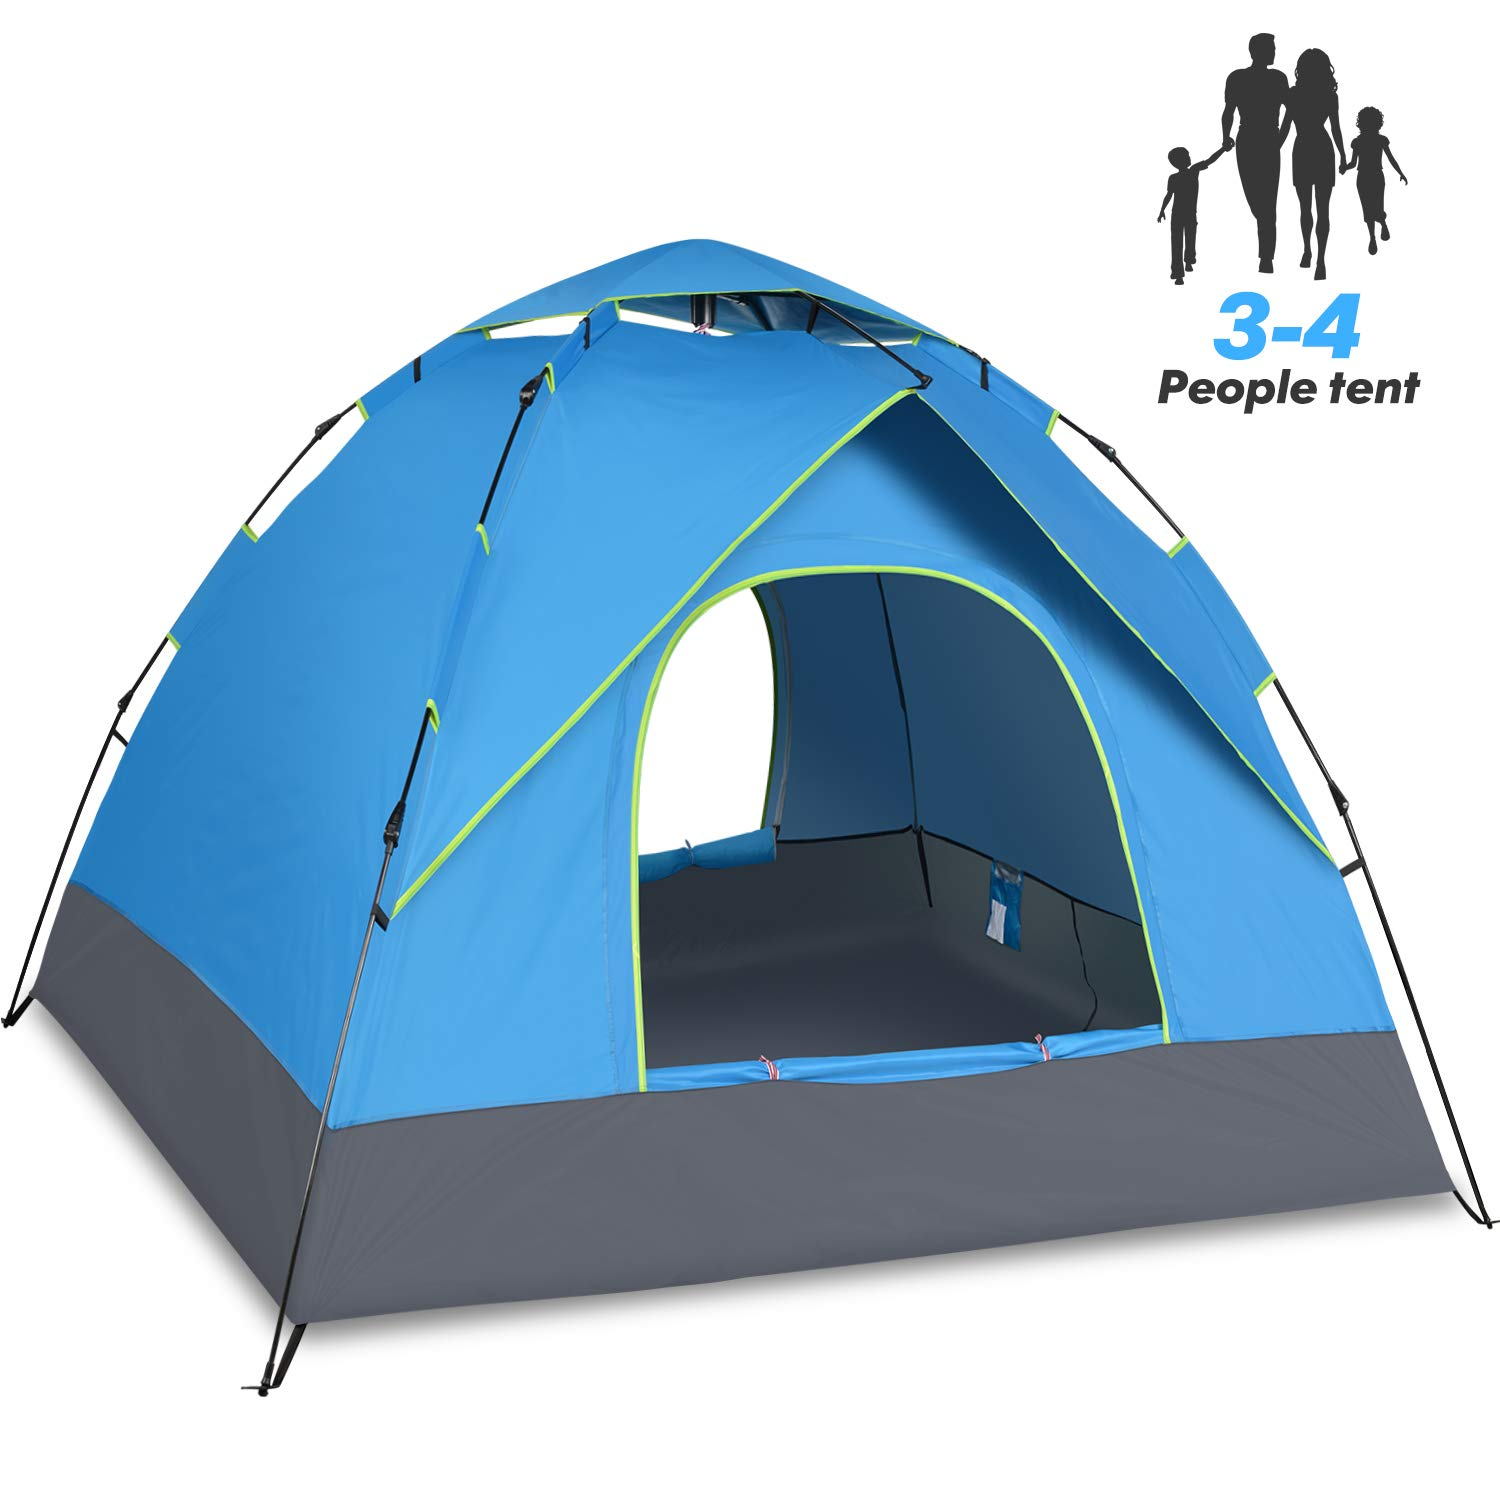 Amagoing 4 person tents for camping with instant setup double layer waterproof for four seasons: